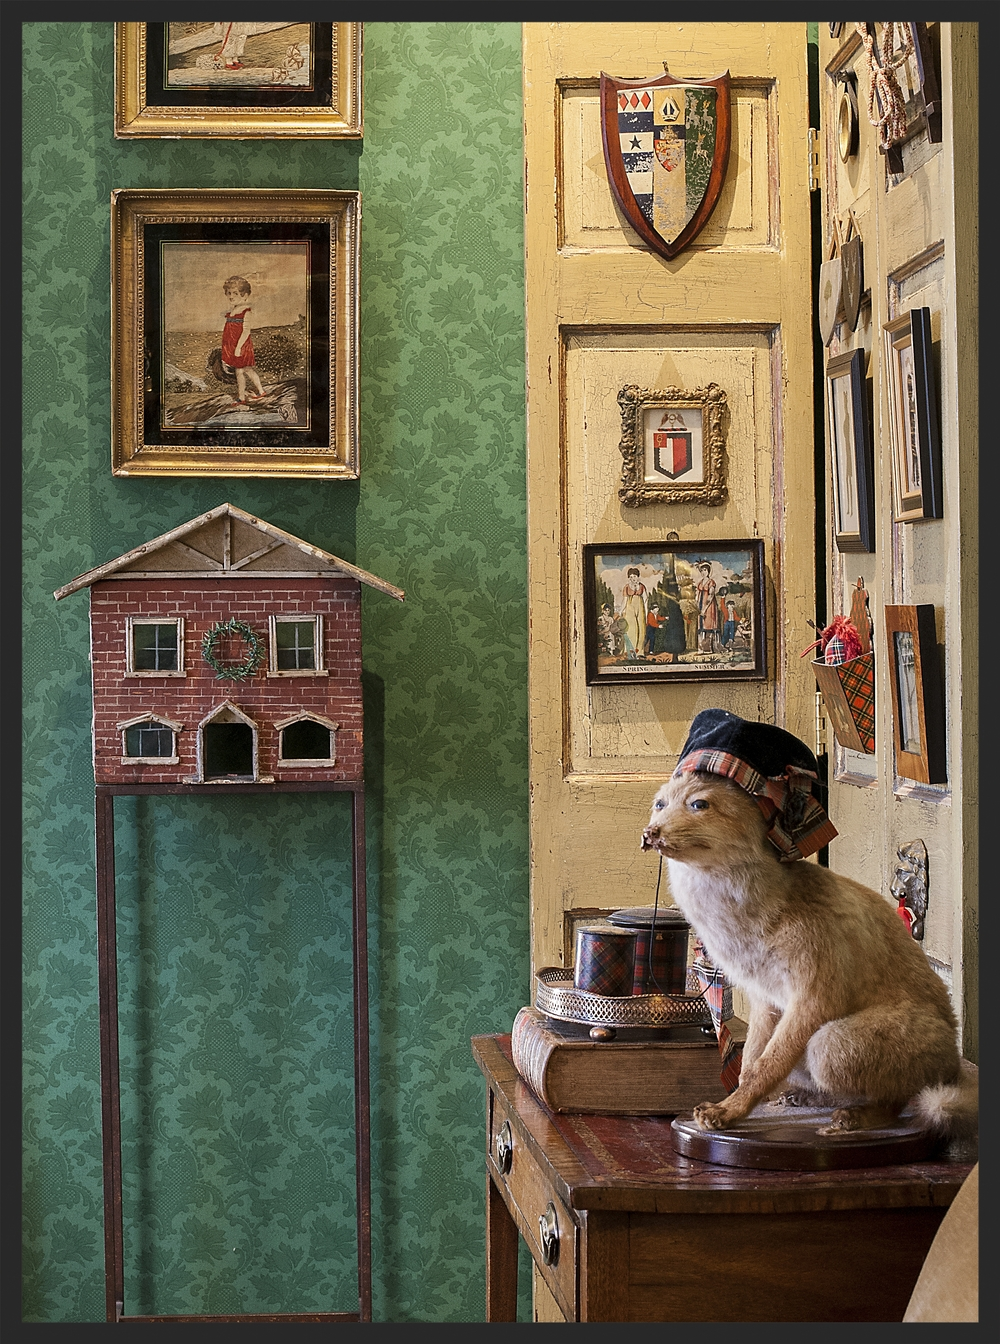 Framed silk needlework, little house on stand, mounted fox.  Linda Kay McCloy - alittleenglishinteriors.com